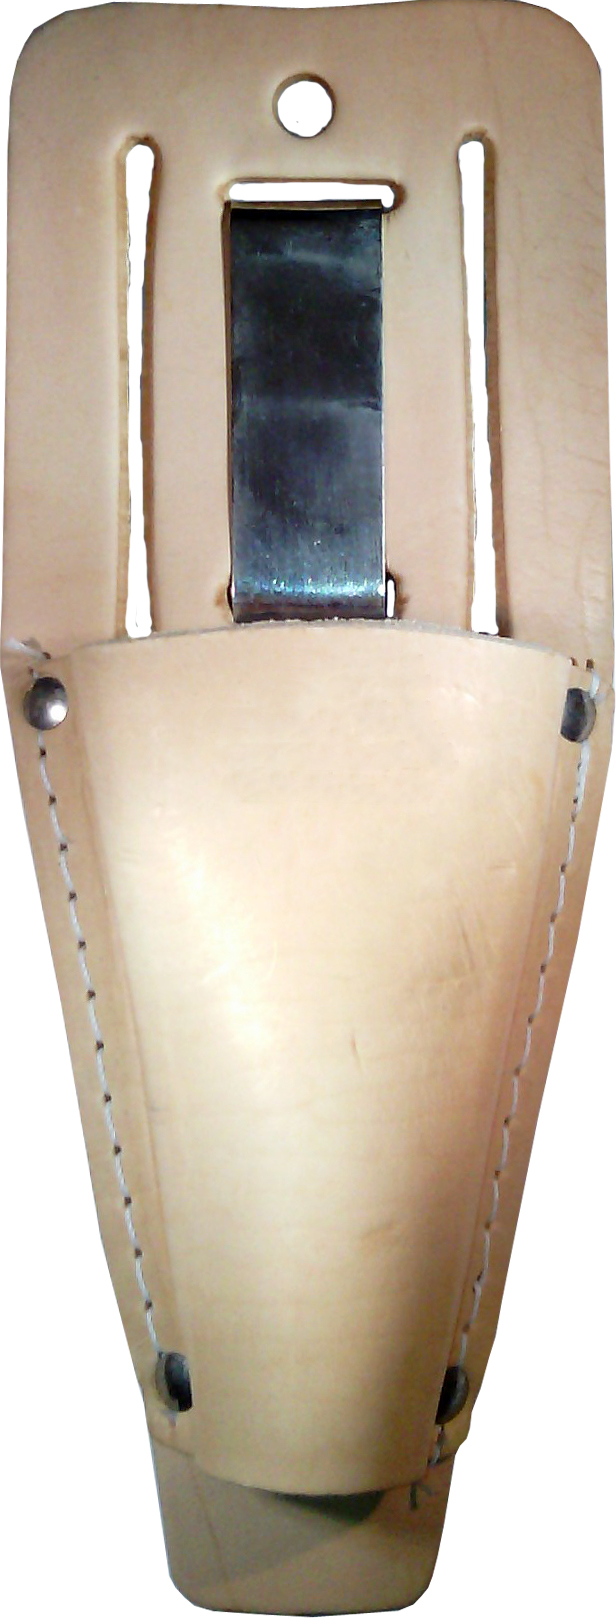 Zenport Holster HJ262 Leather Pruner Sheath w/Belt Loop and Metal Clip for Pruners / Folding Saws